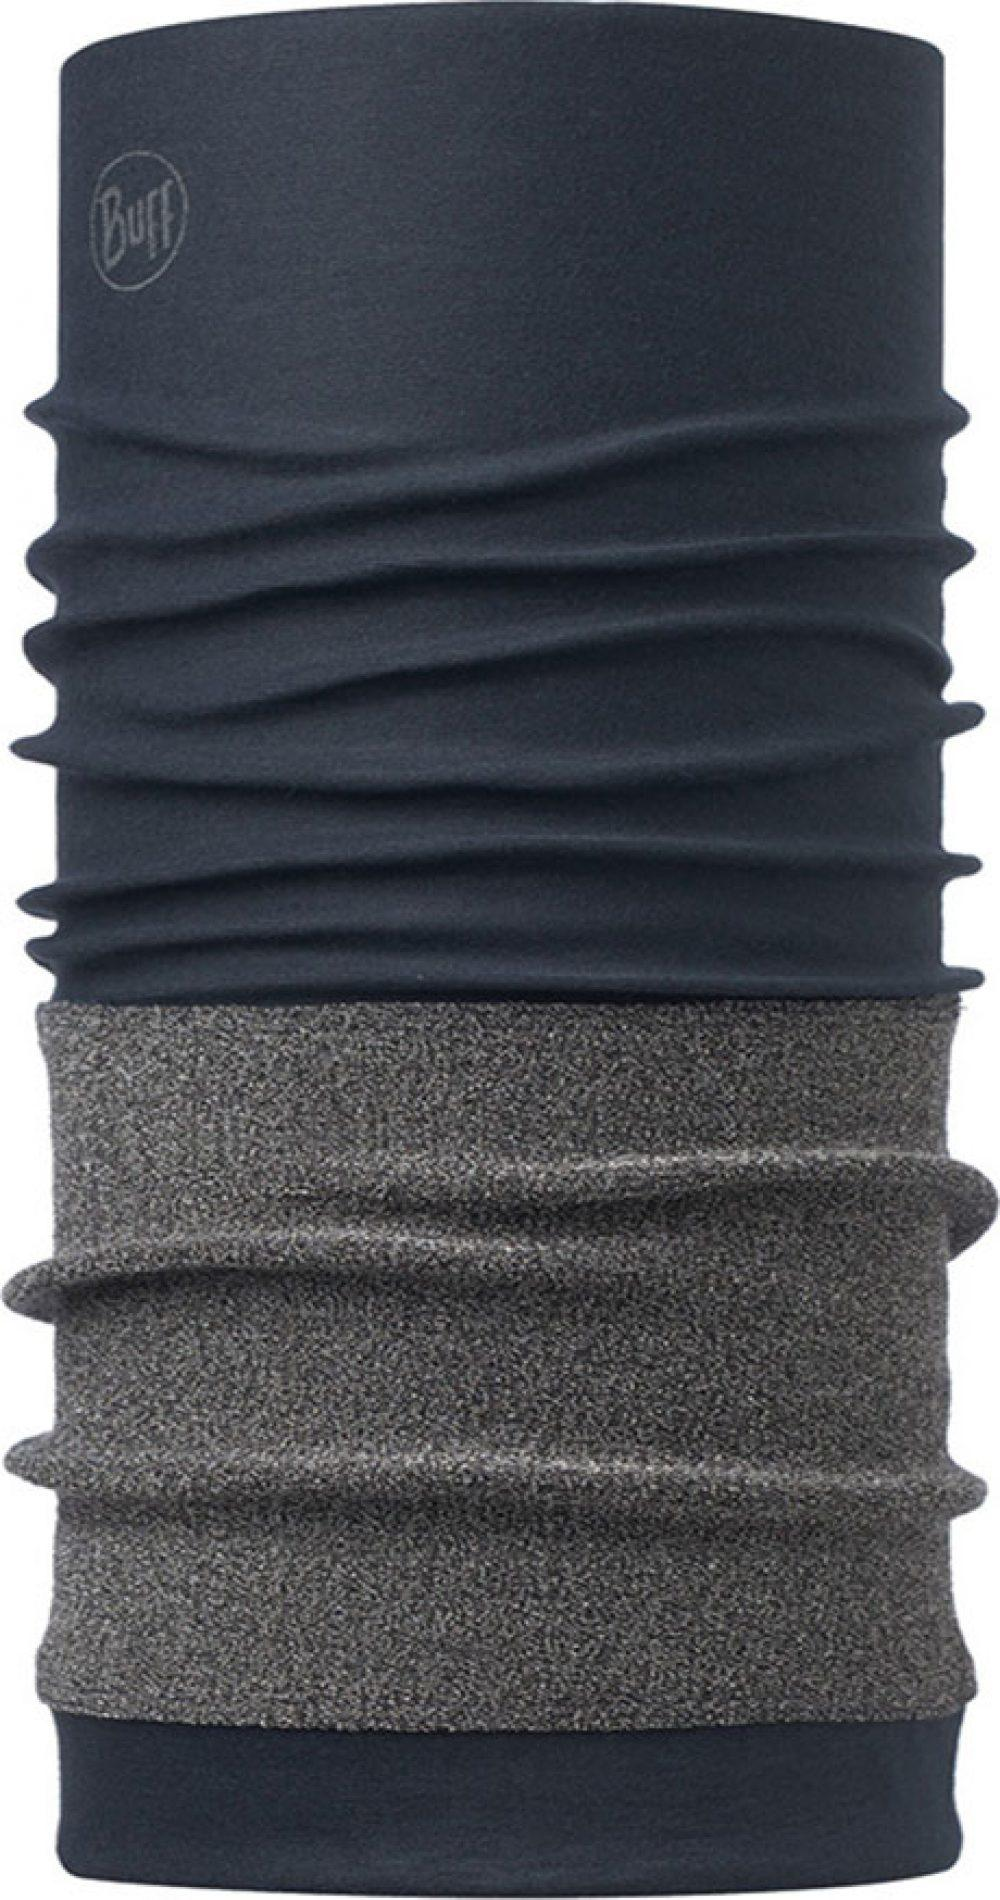 "Image of the Cutproof Buff® design ""Navy"". It's blue tube (neck sock) with a grey cut protection layer covering most of the lower half of the Buff®. Source: buff.eu"